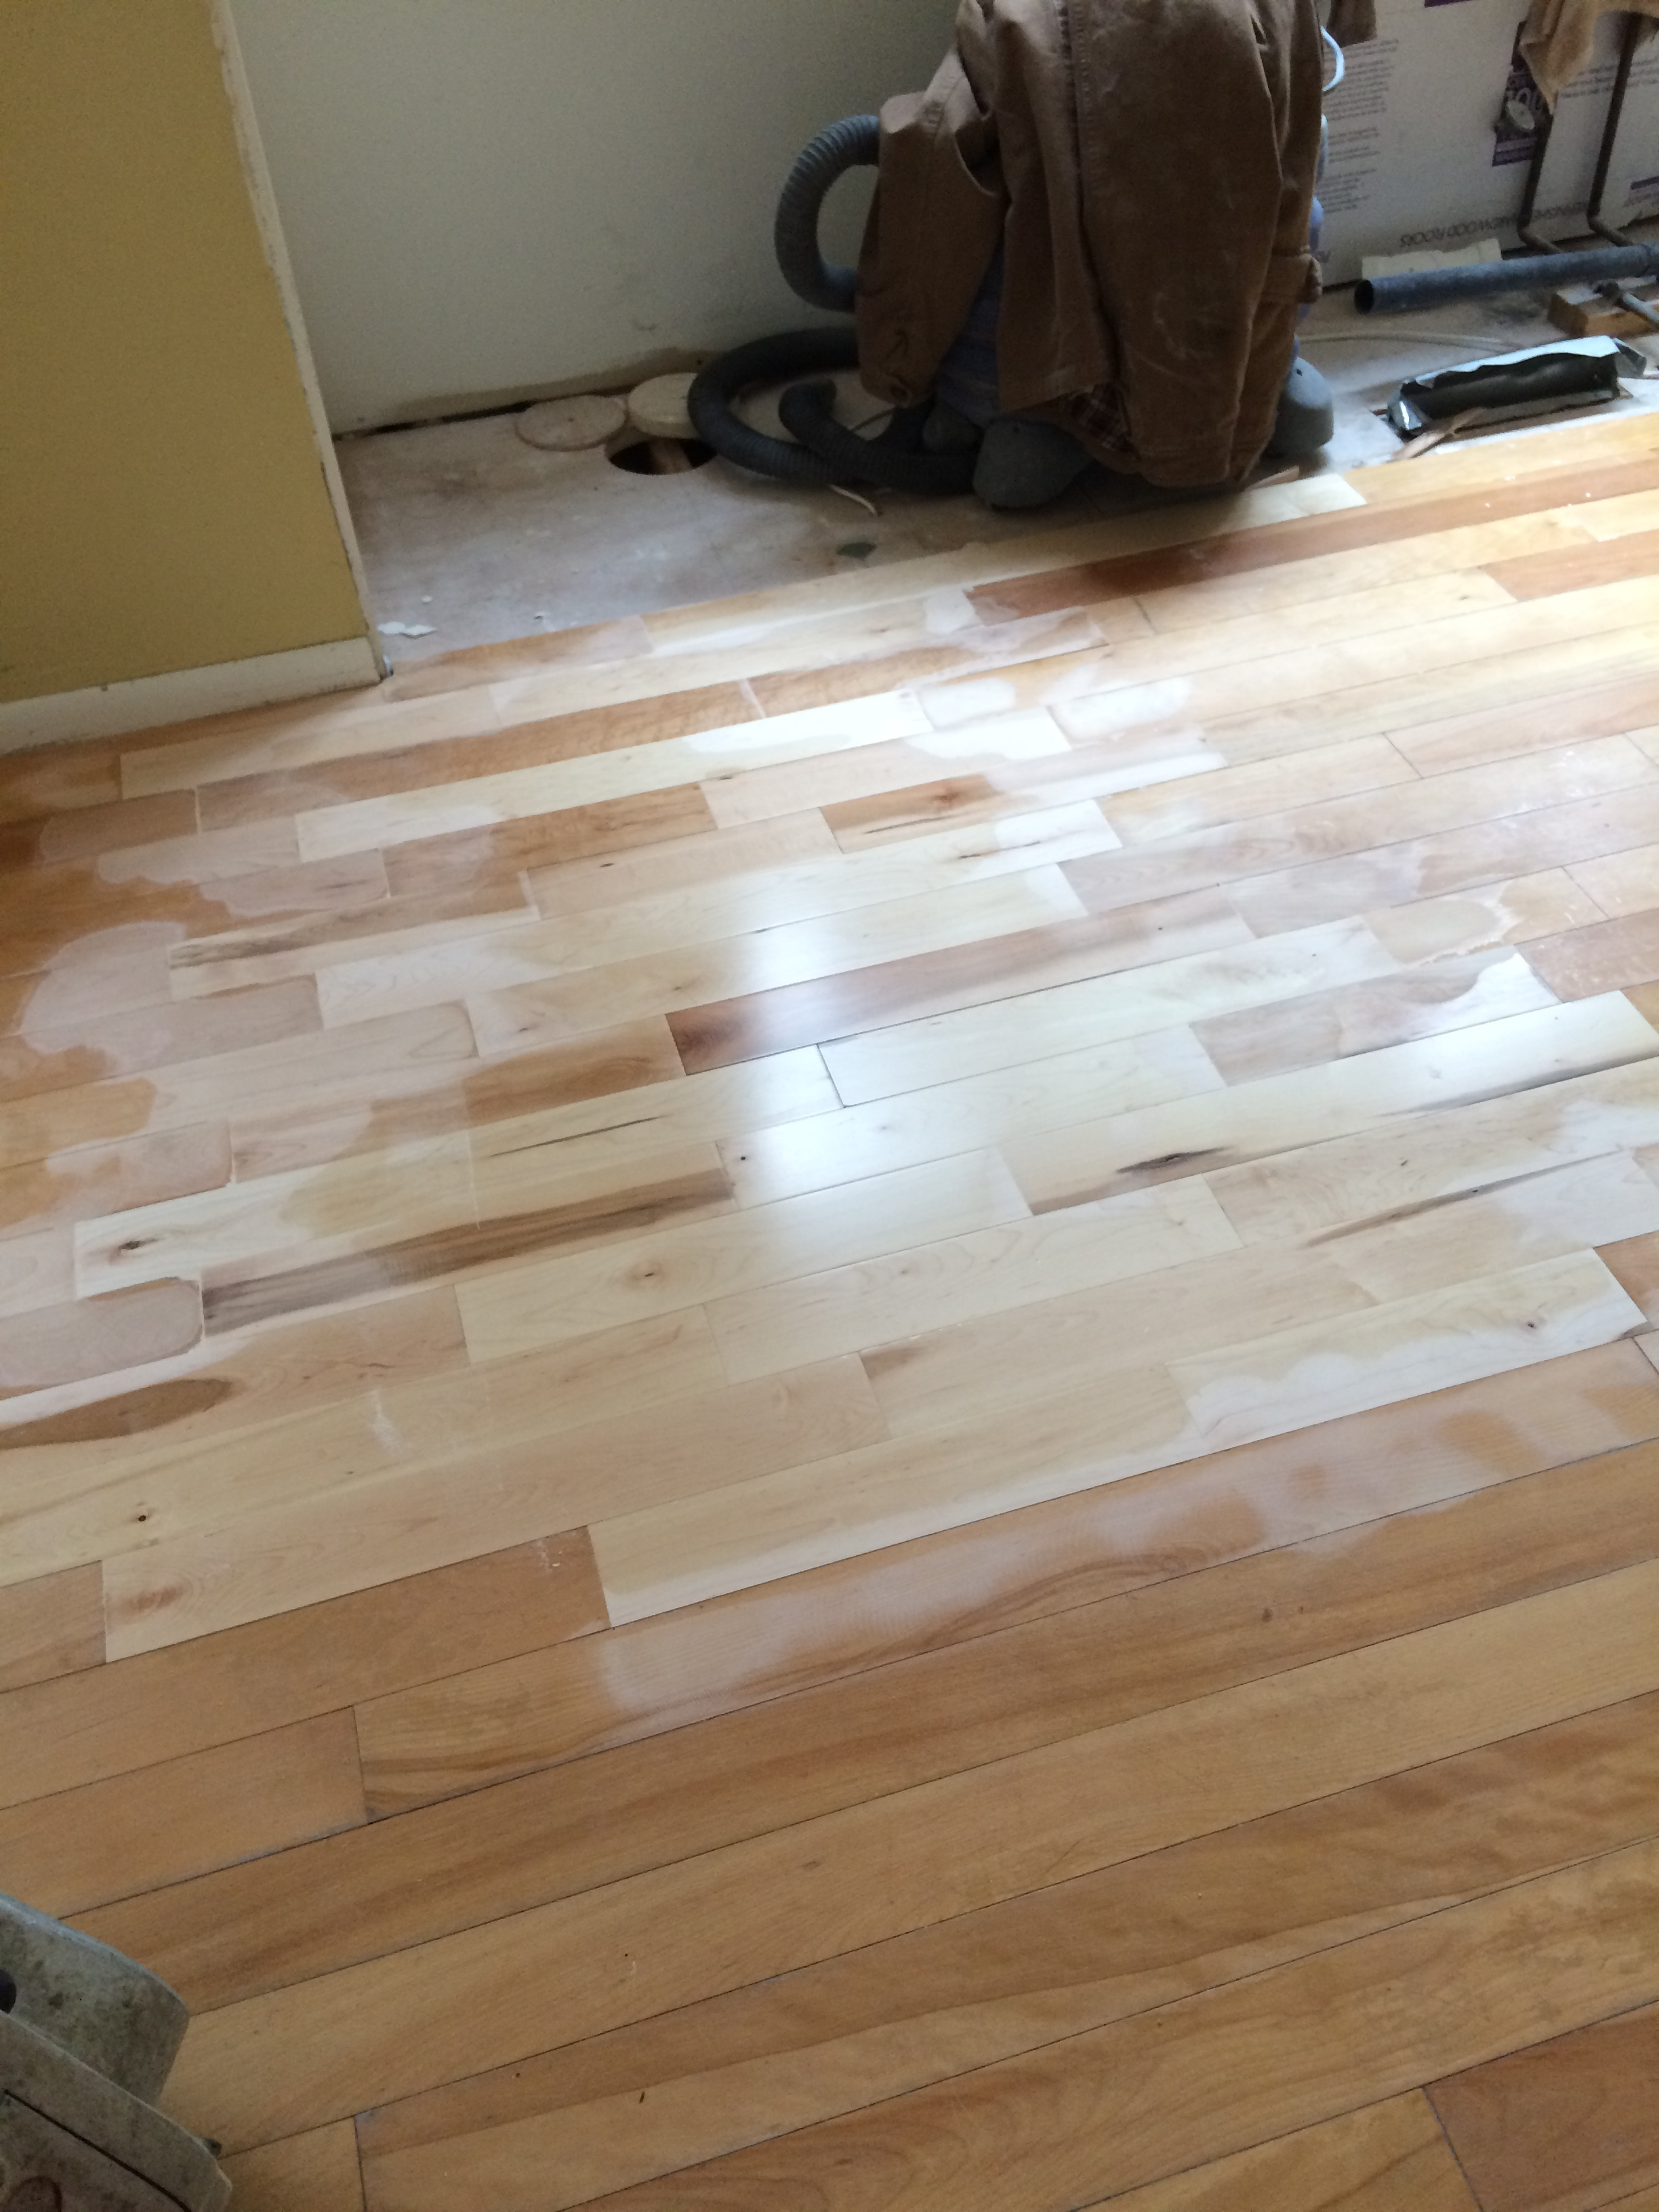 Kitchen Renovation Patch Repair And Stain The Hardwood Floors